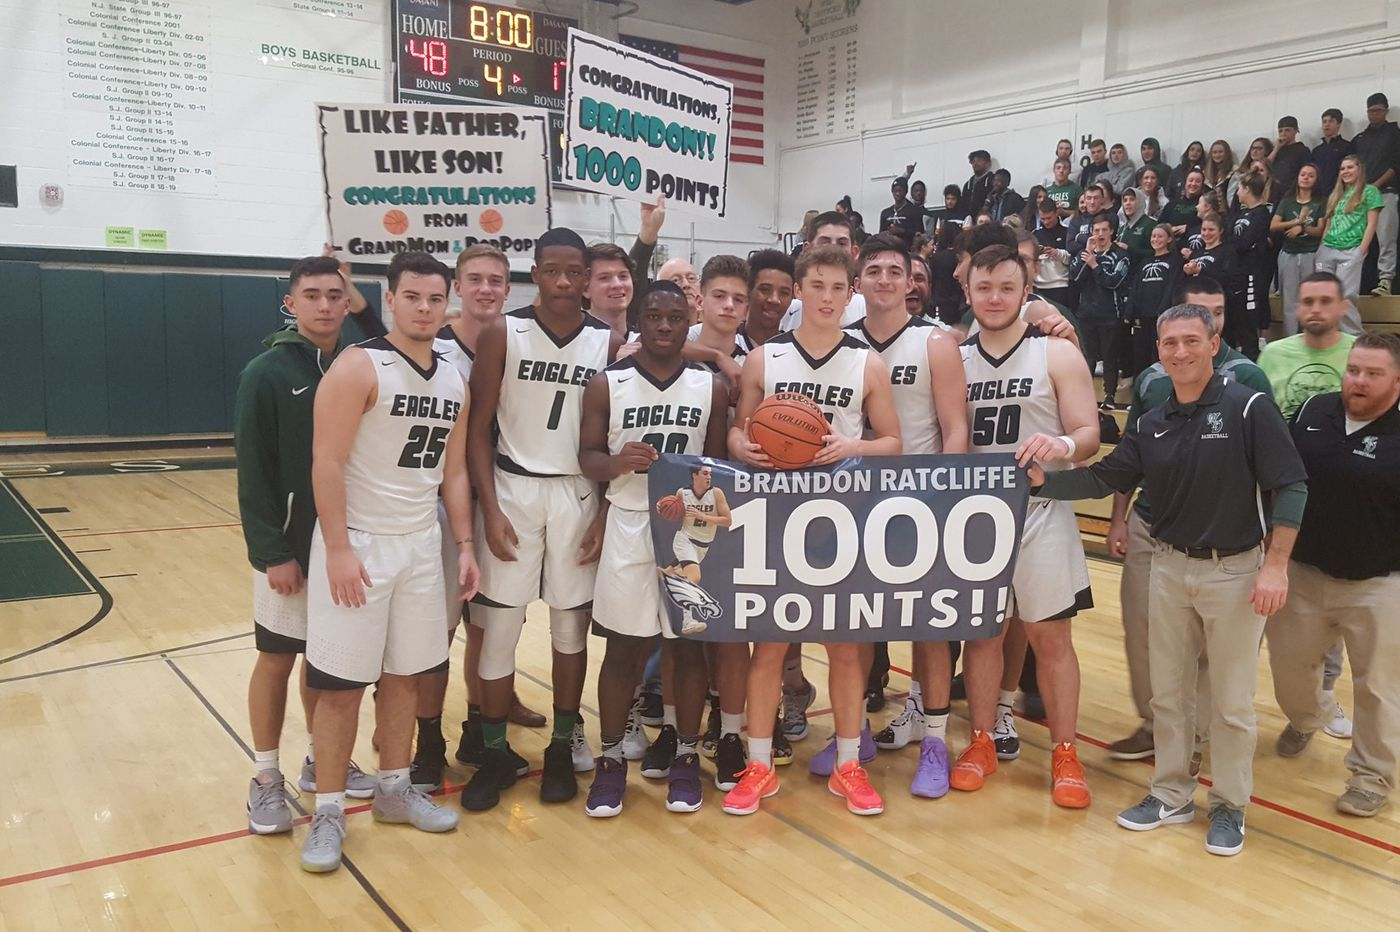 Monday's South Jersey roundup: Brandon Ratcliffe scores 1,000th career point in West Deptford's win over Audubon